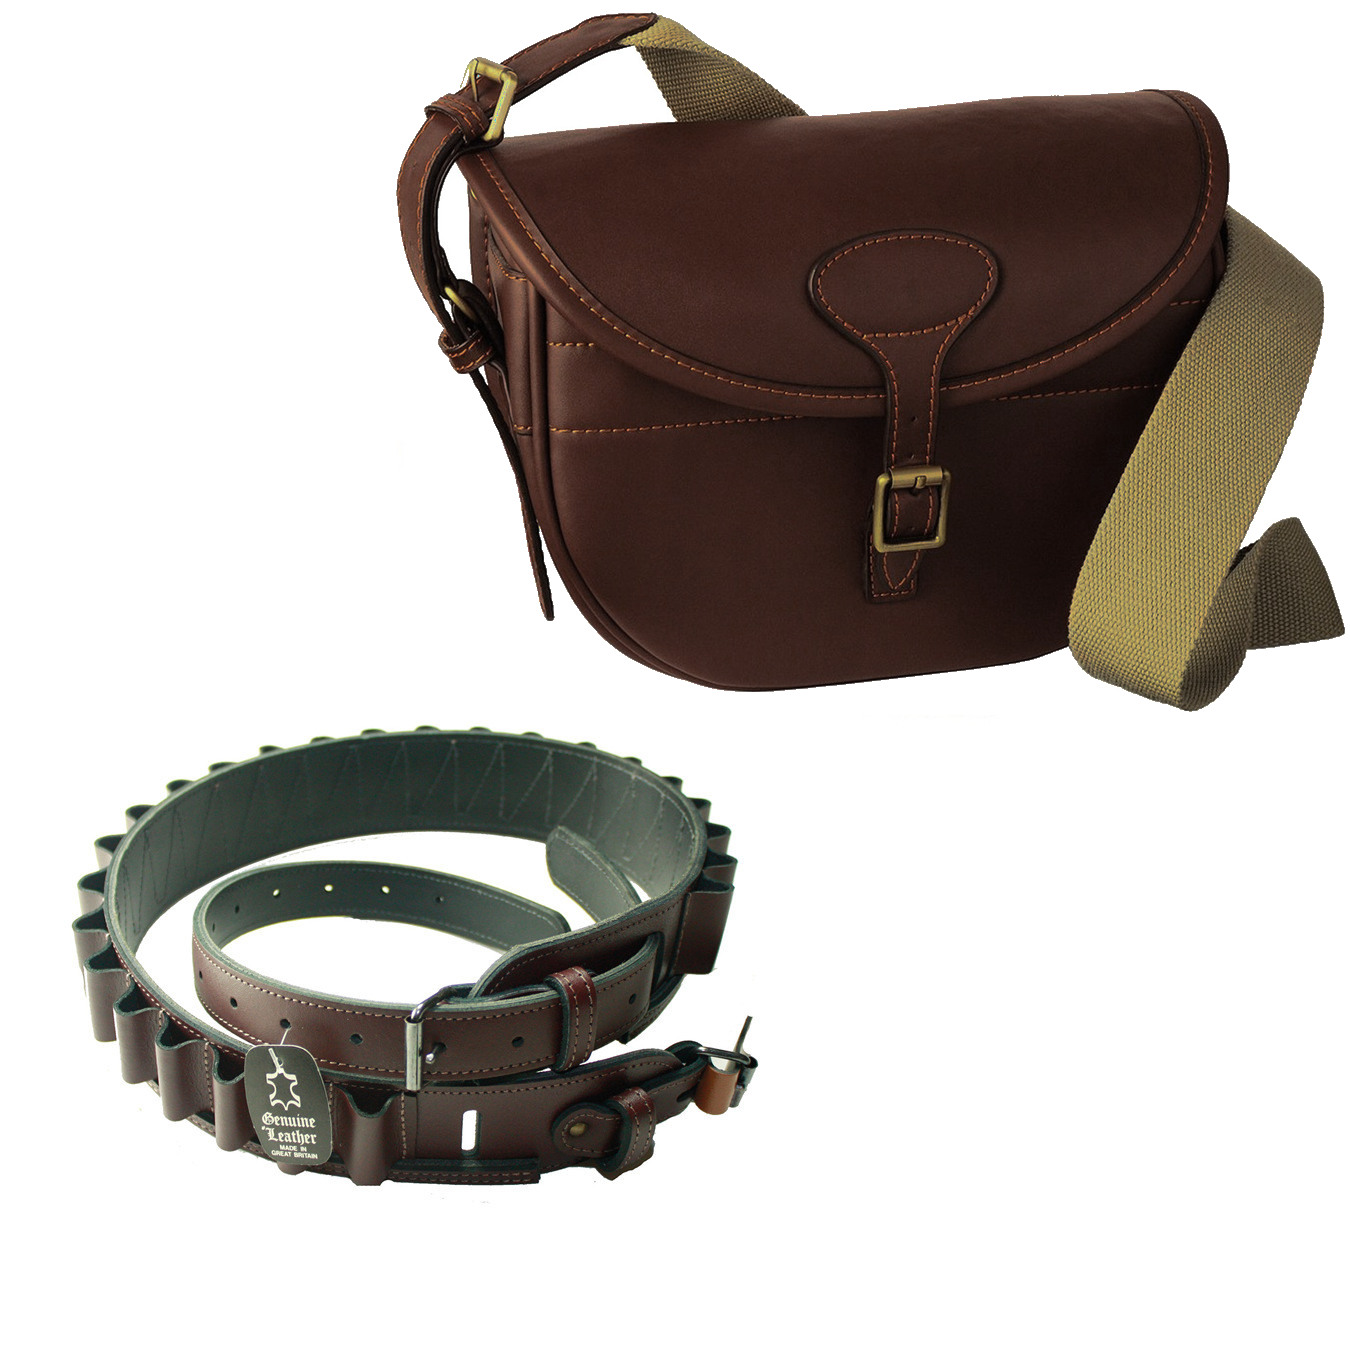 Guardian Heritage Cartridge bag and belt kit 12G or 20G canvas and ...